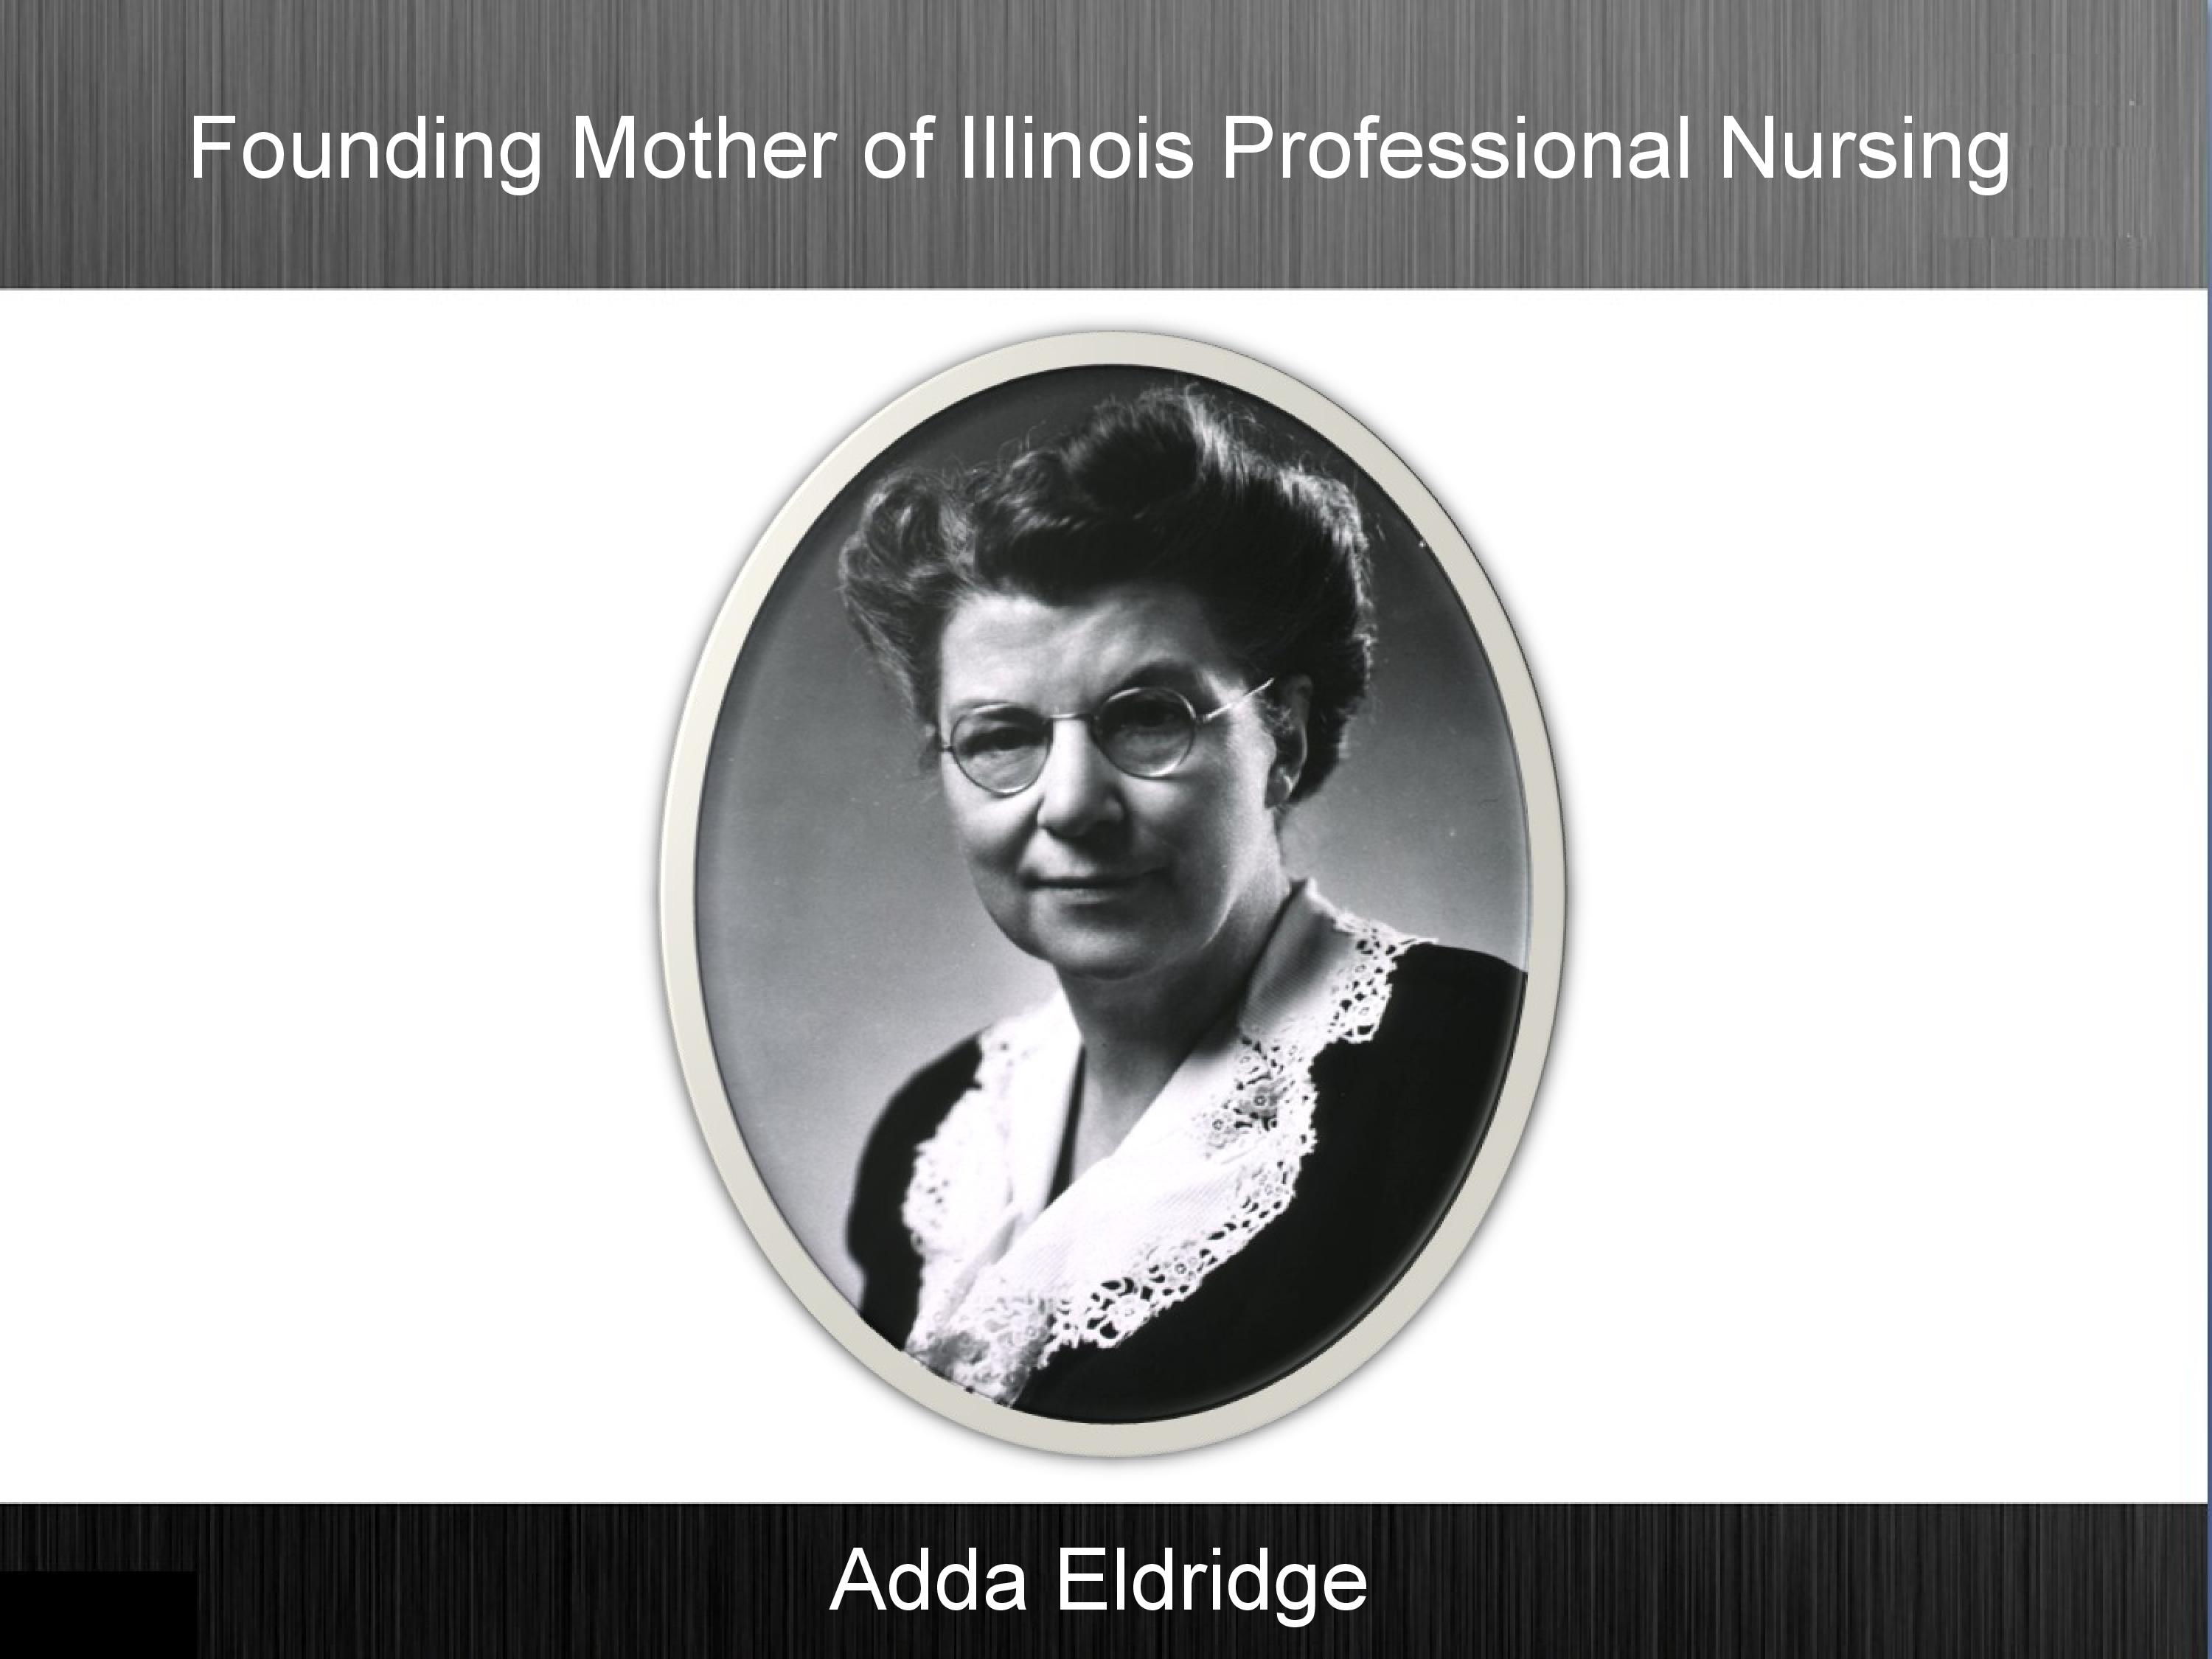 ADDA ELDRIDGE: FOUNDING MOTHER OF ILLINOIS PROFESSIONAL NURSING